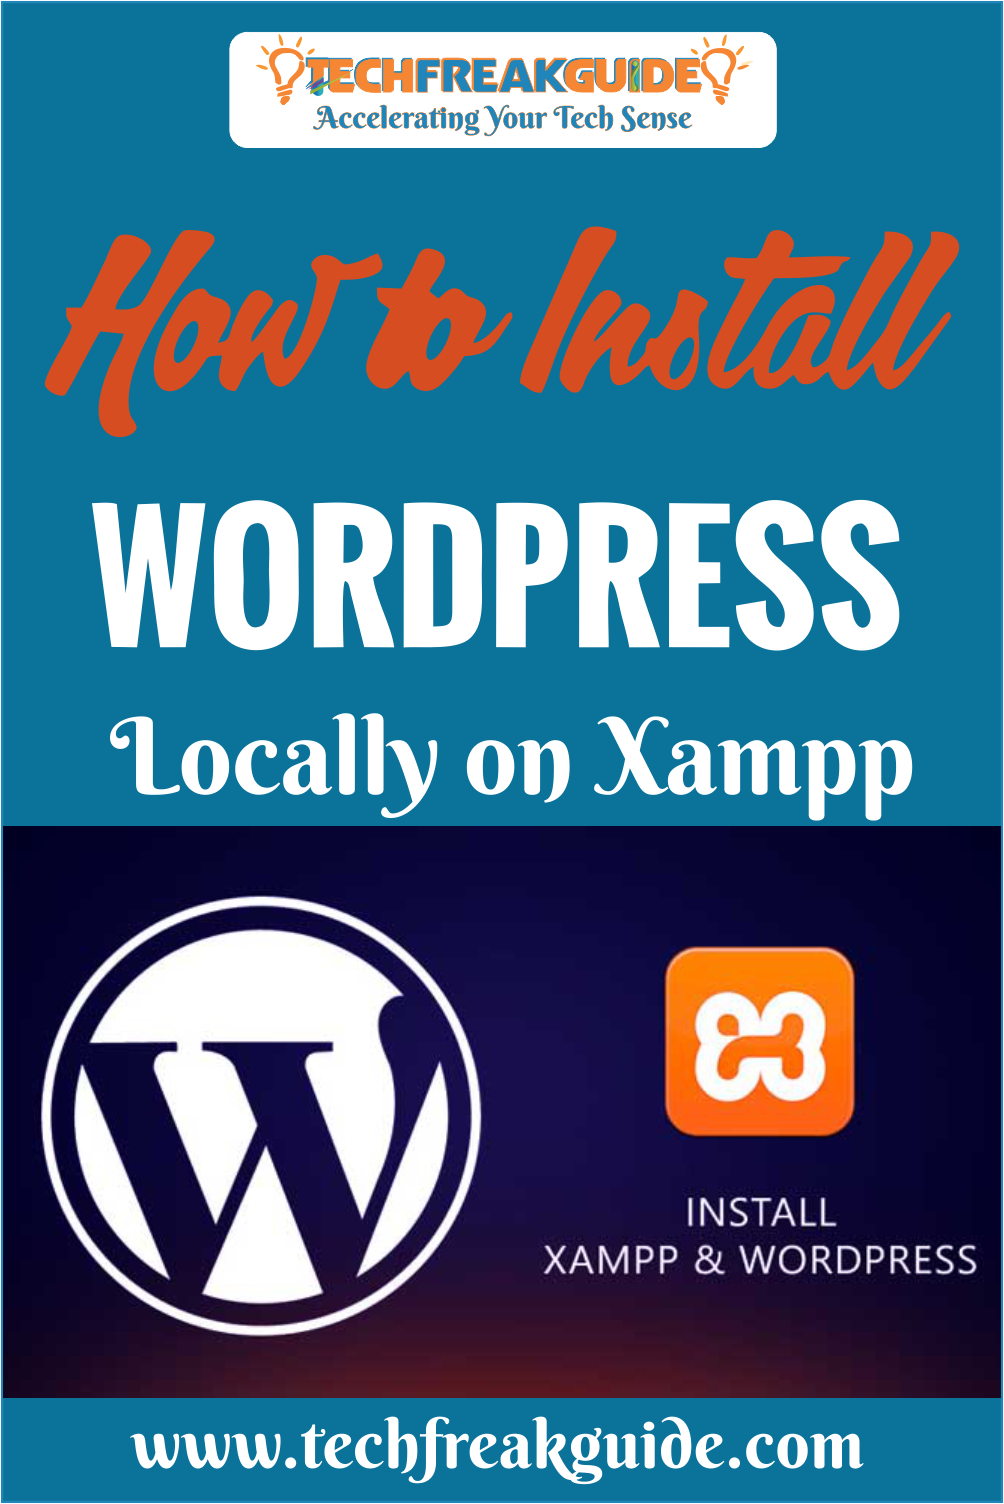 Do you wanna to install XAMPP and WordPress to make a local